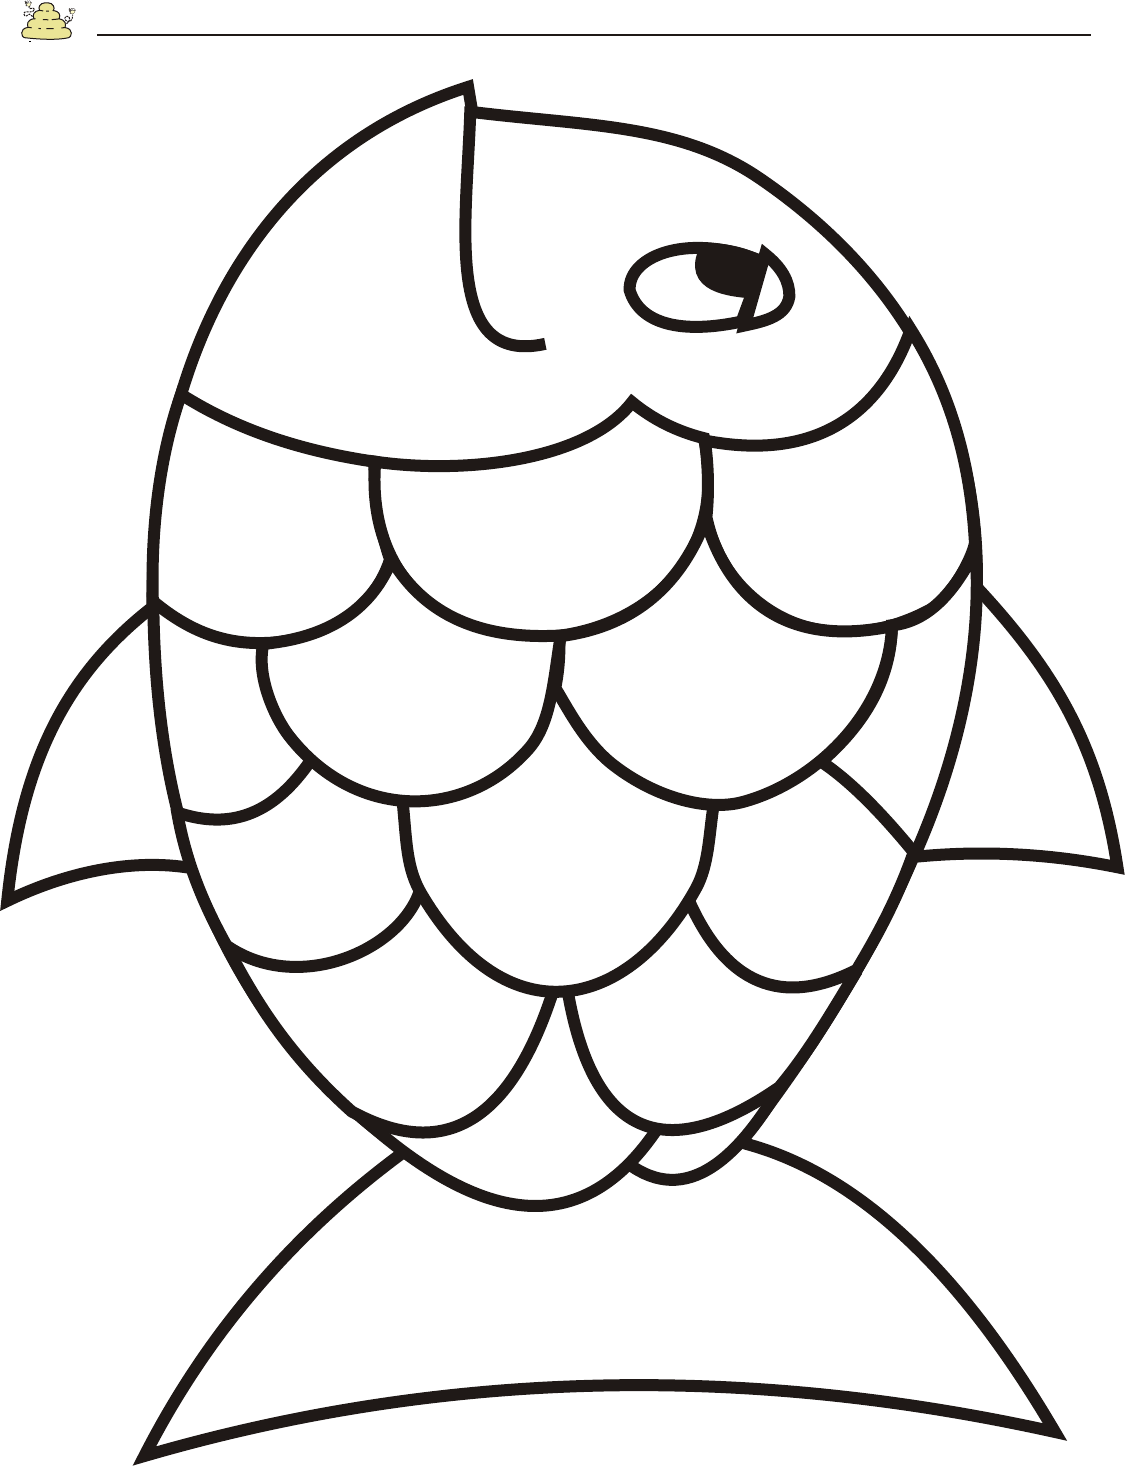 Coloring Pages ~ Fabulousoring Book Templates Free Image Ideas